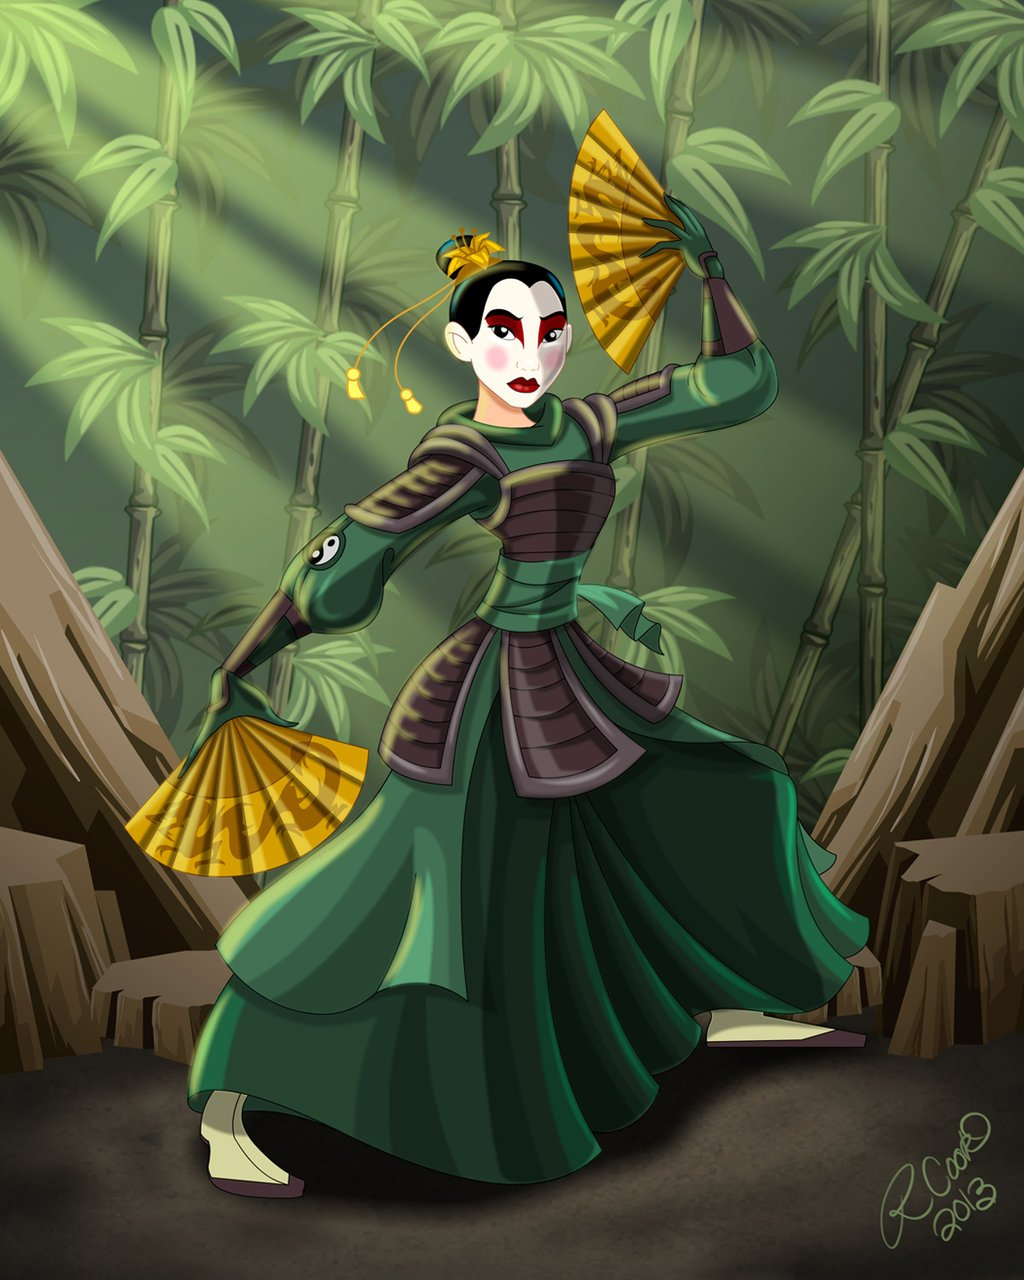 mulan_of_the_kyoshi_warriors_by_racookie3-d69d21l